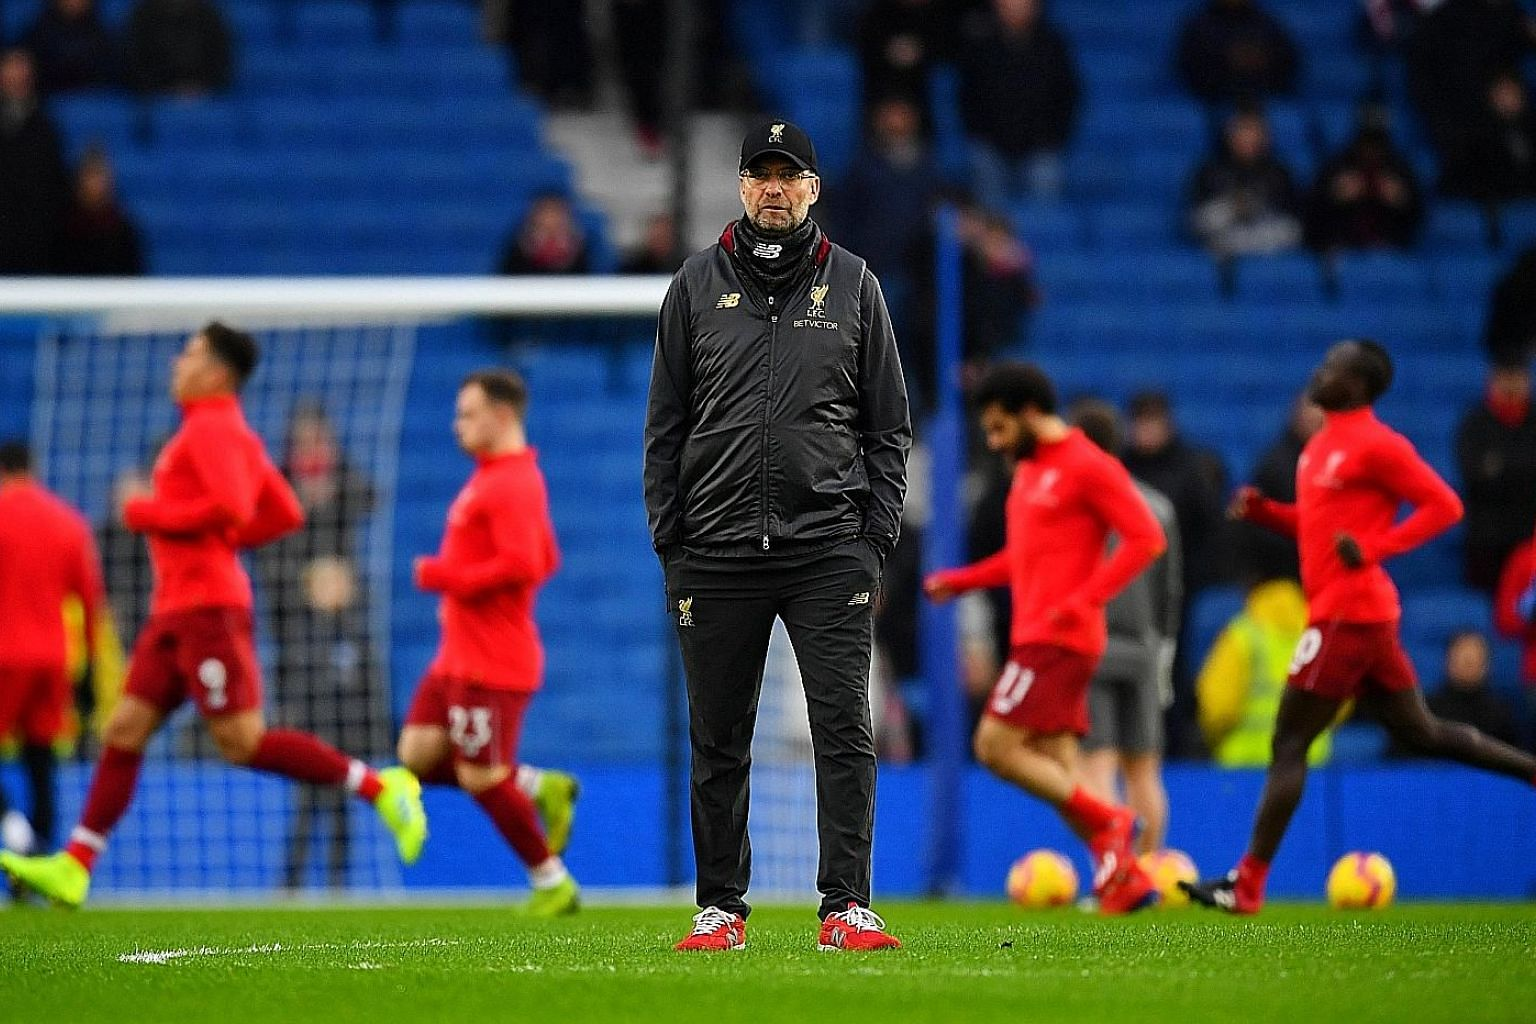 Liverpool may be undefeated at Anfield in European competitions since 2014, but Jurgen Klopp will face Bayern Munich with a depleted backline, with centre-back Virgil van Dijk (suspended), Joe Gomez (fractured leg) and Dejan Lovren (hamstring injury)